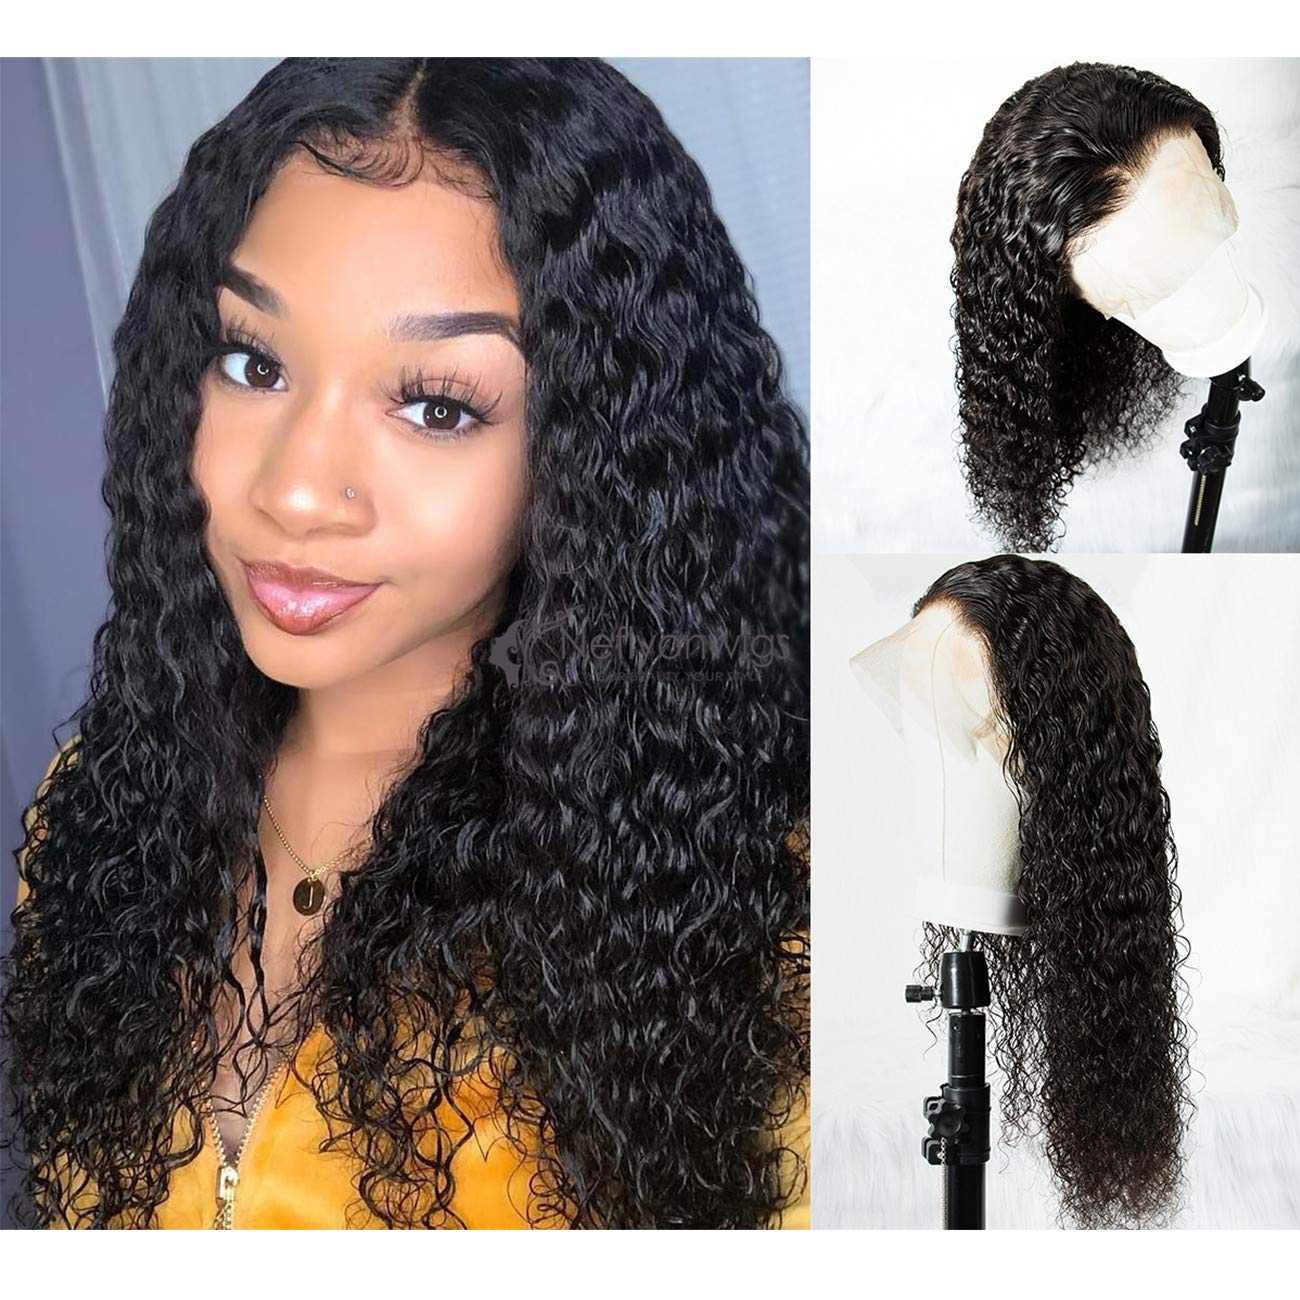 Amazon Com 360 Lace Frontal Wigs 180 Density Water Wave Human Hair Wigs With Baby Hair For Black Women Natural Color 14inch Beauty